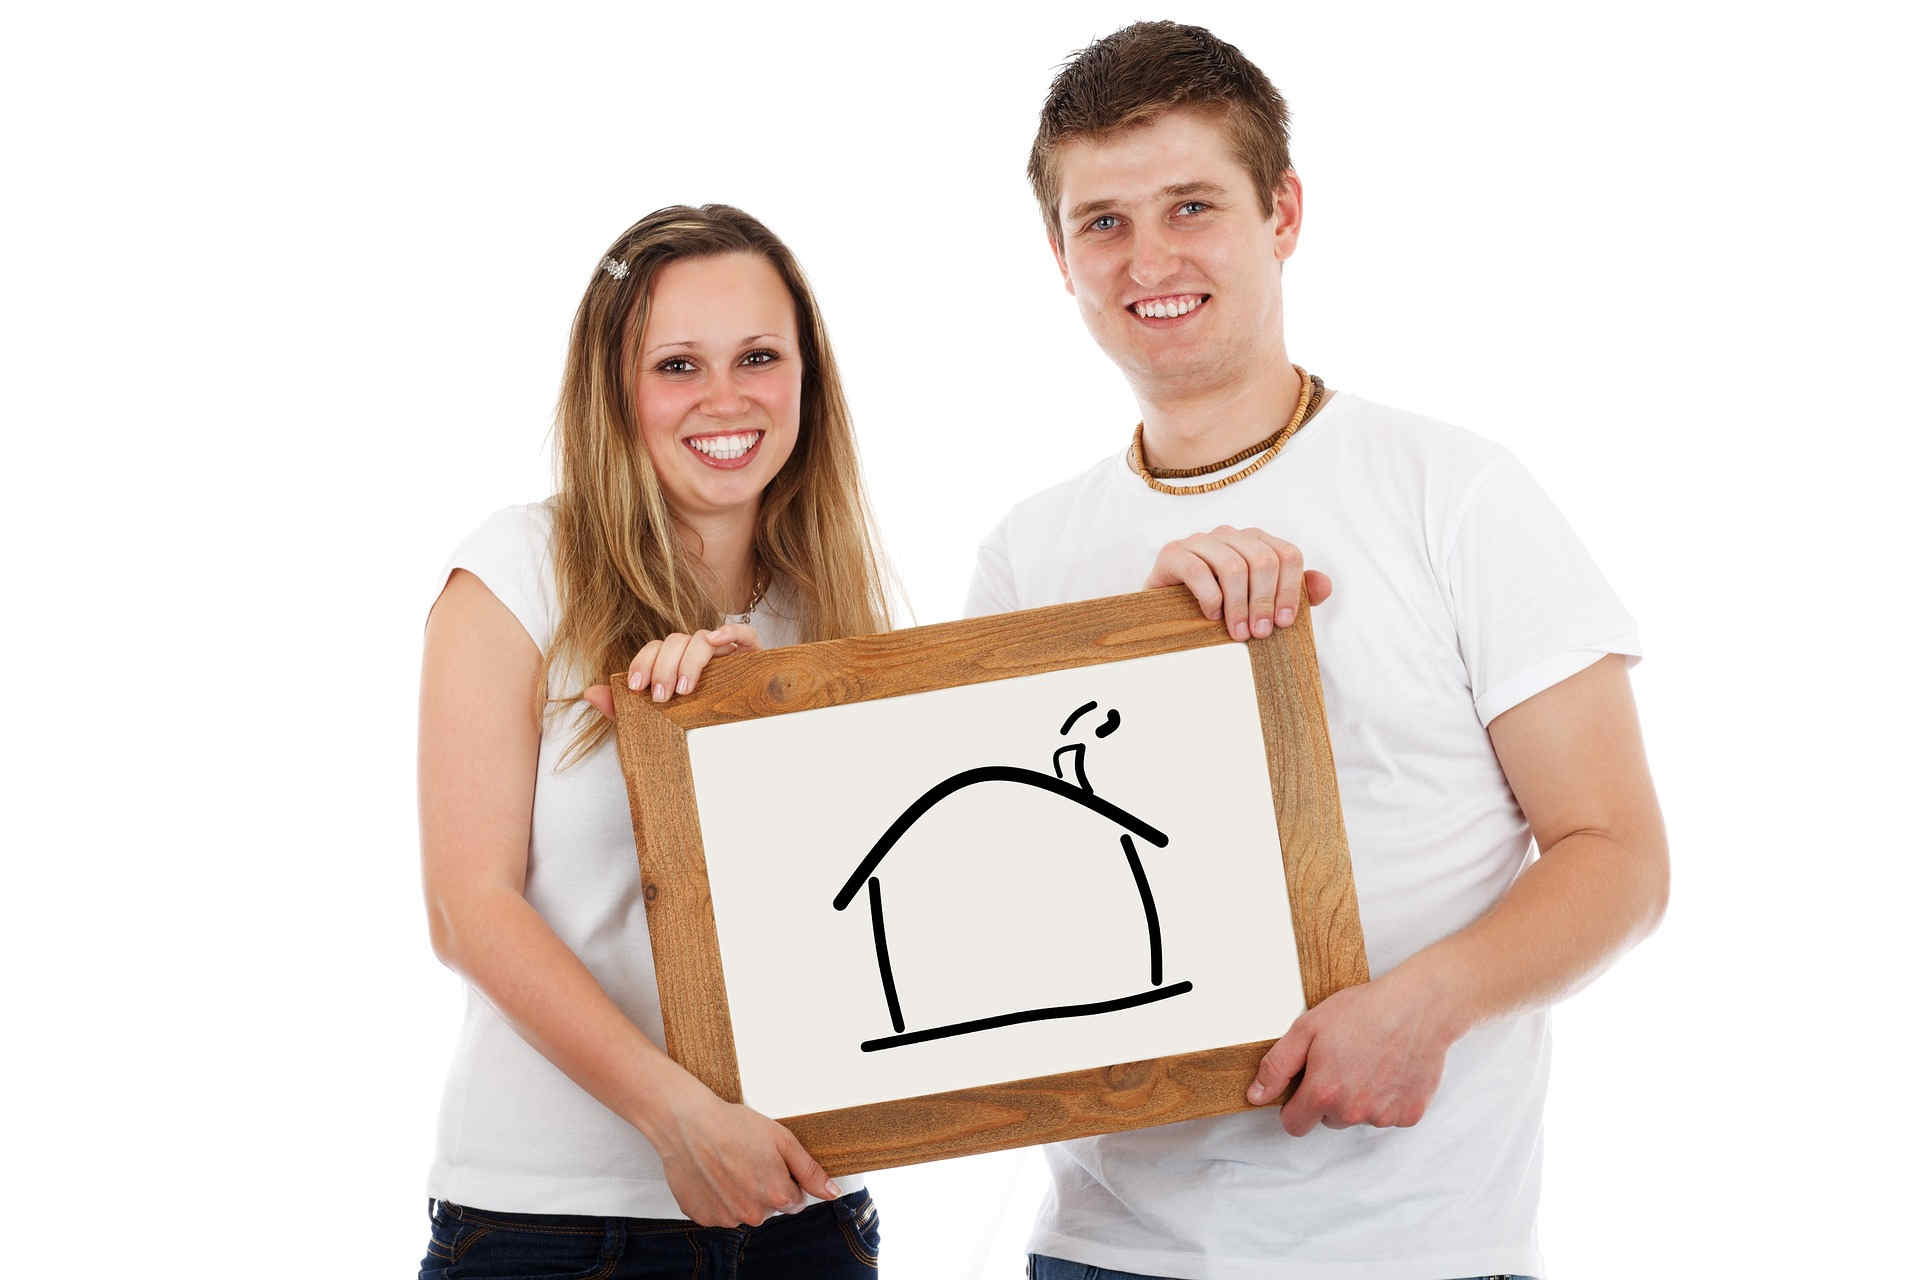 woman and man holding drawing of a house.jpg